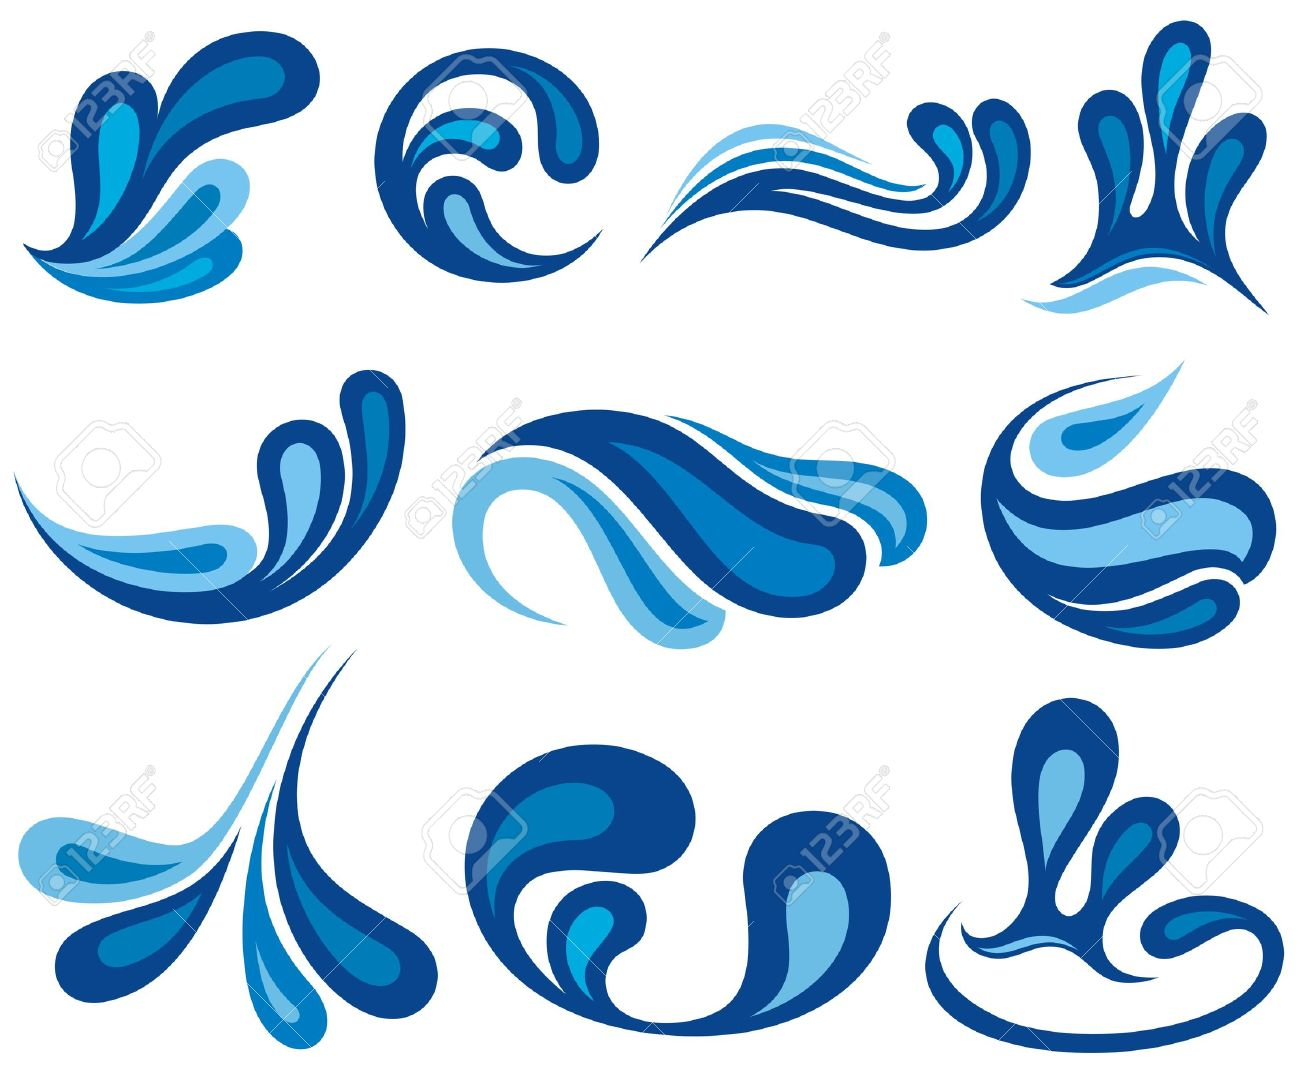 splash water drops royalty free cliparts vectors and stock rh 123rf com water splash clipart free splash water clipart